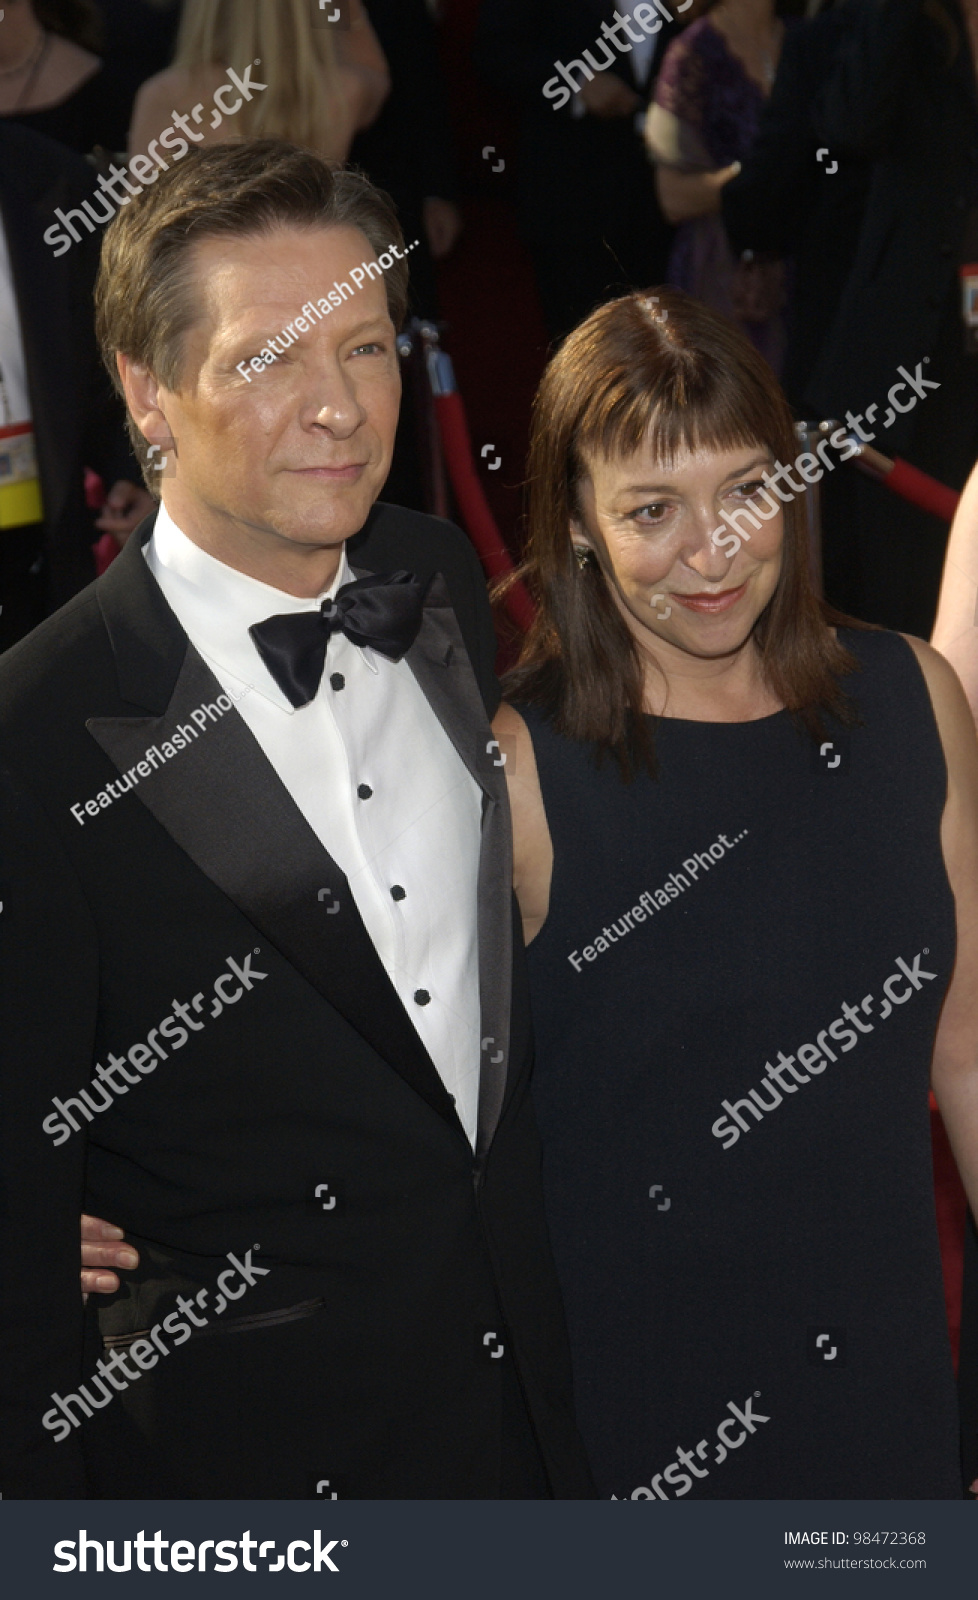 chris cooper wife 55t annual emmy stock photo 98472368